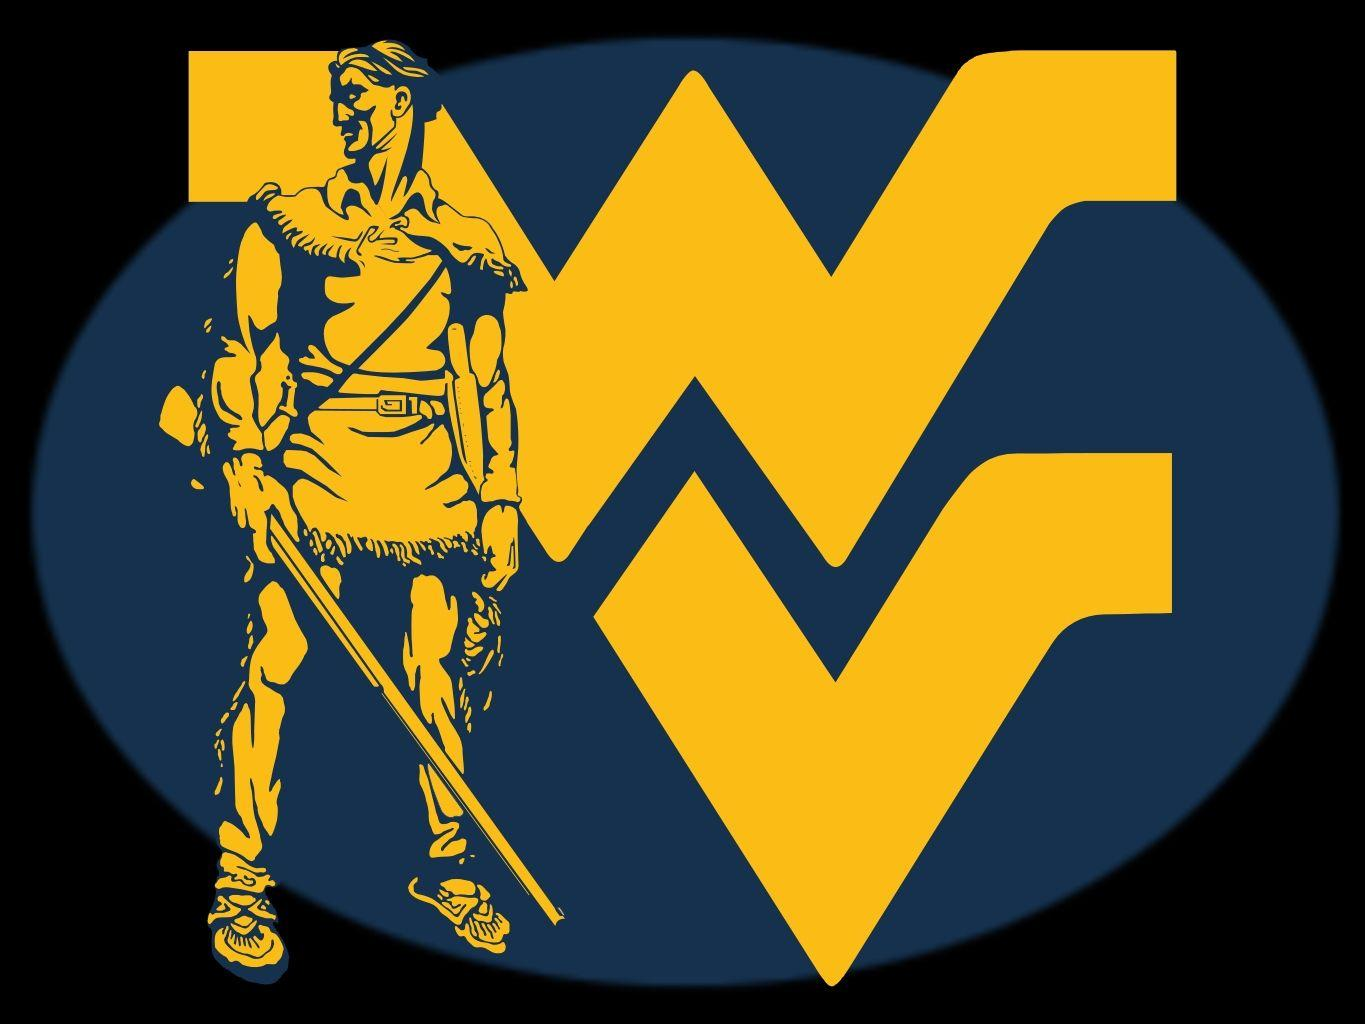 West Virginia Mountaineers Image